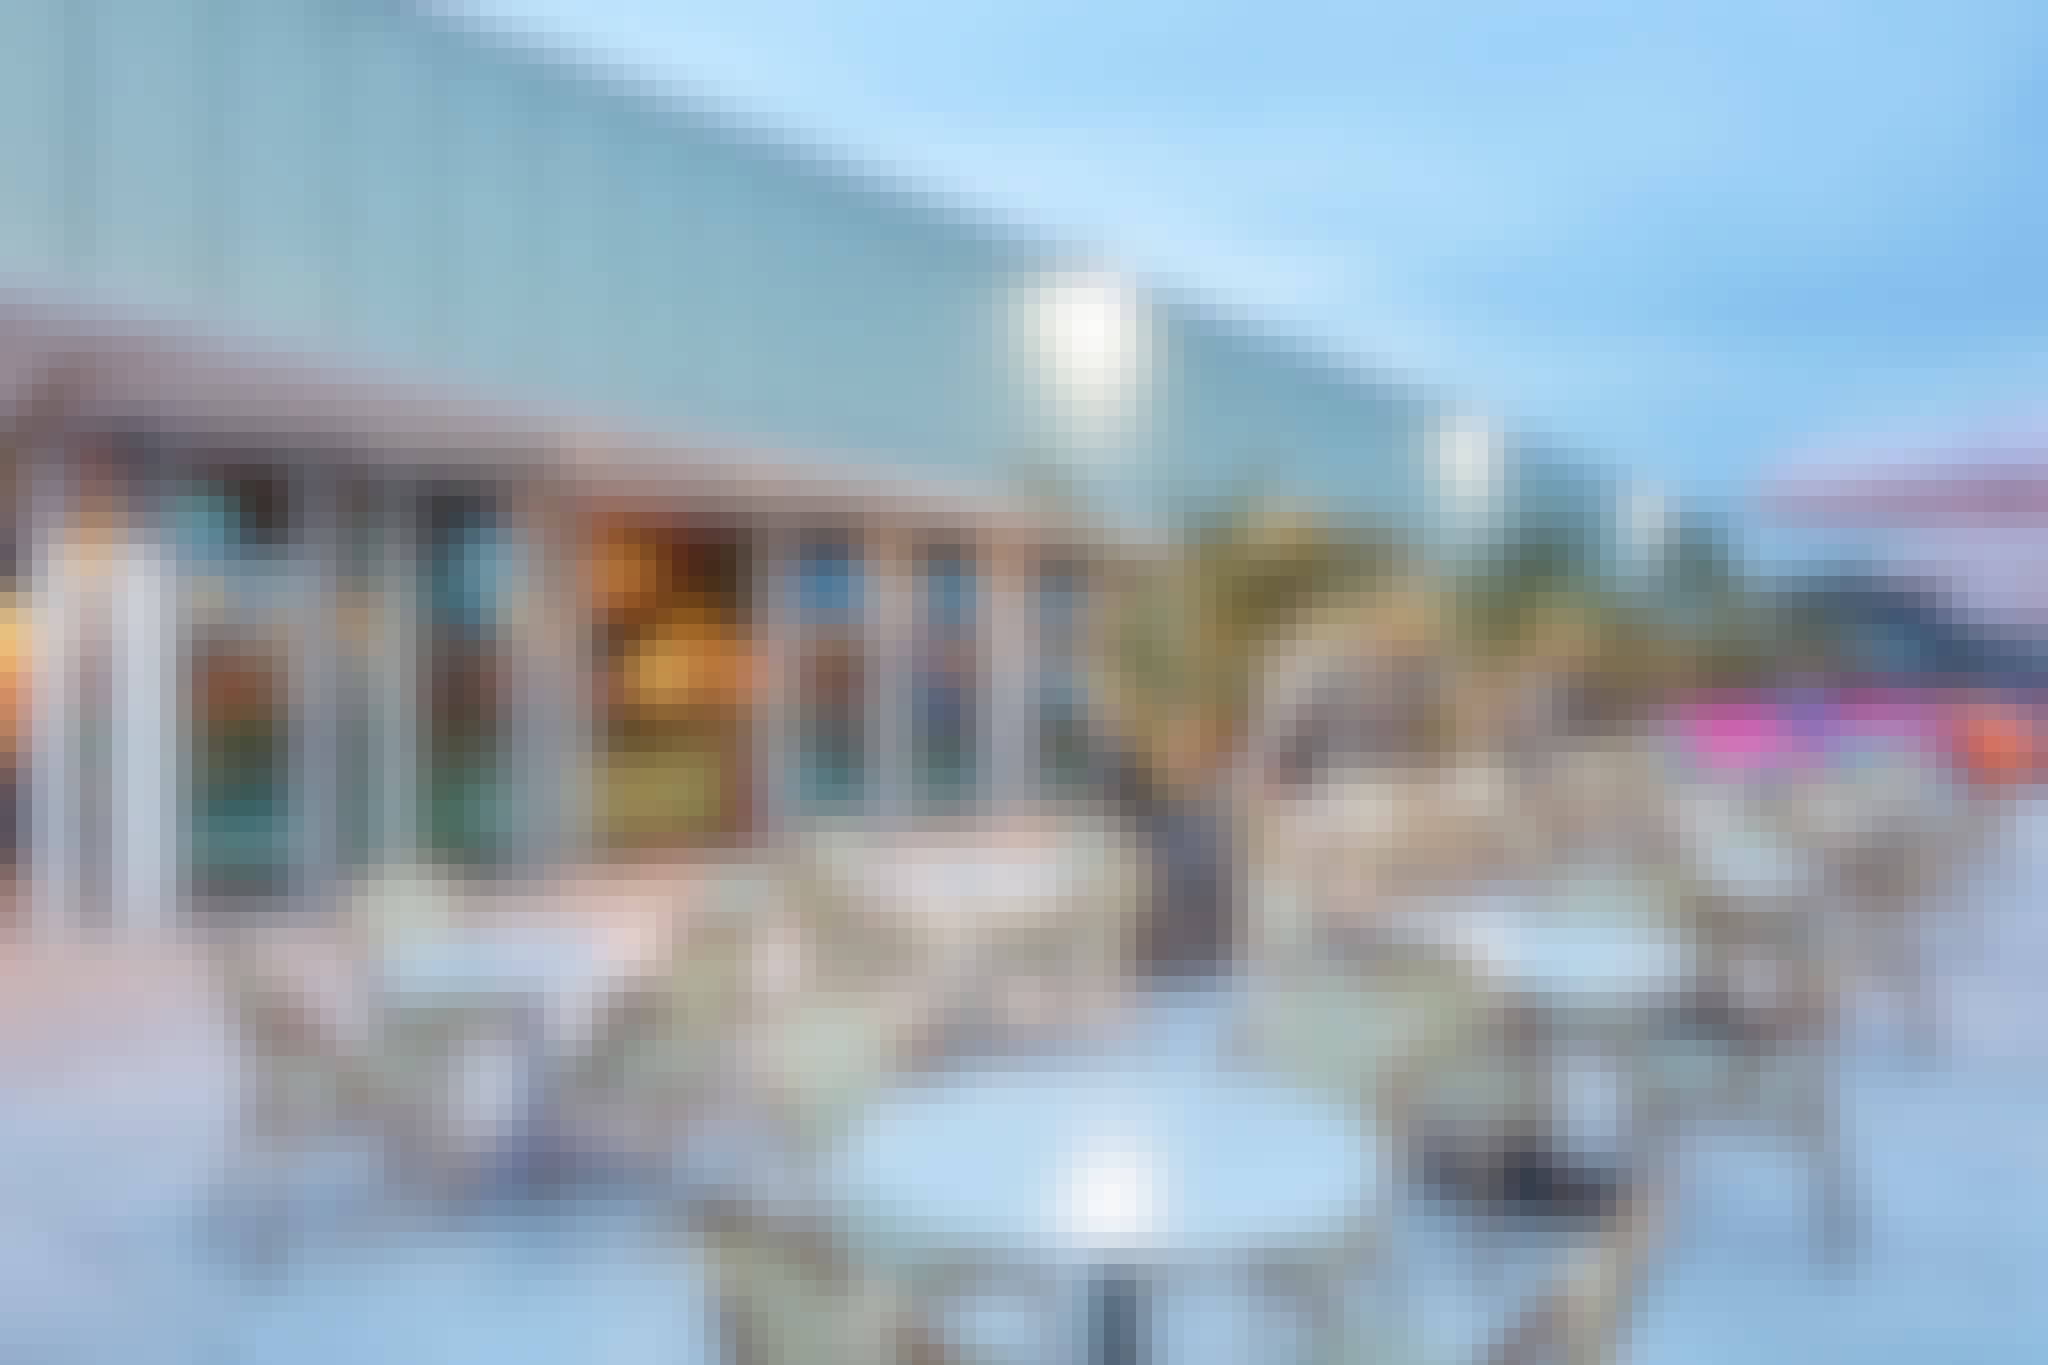 NanaWall commercial glass walls use in rooftop bar